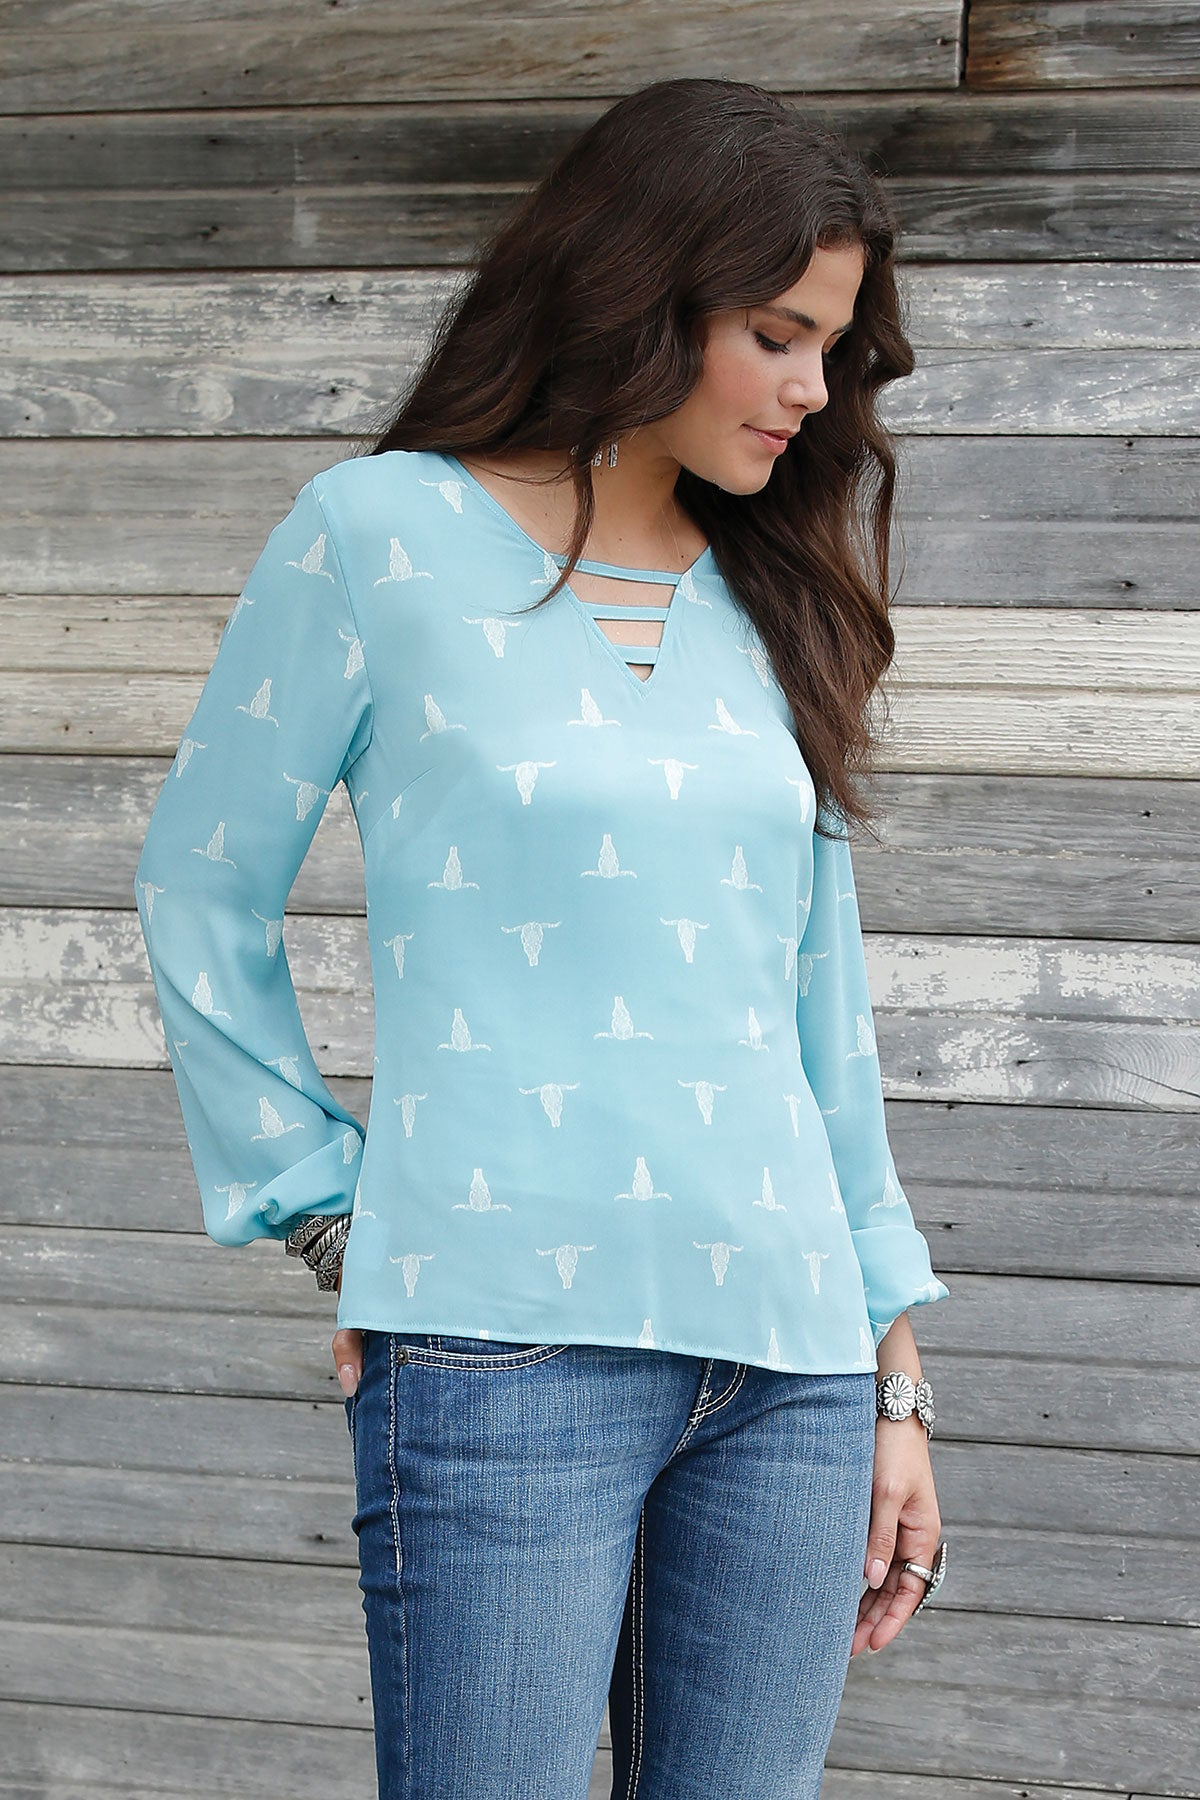 'Cruel' Women's Western Steer Head Print Blouse - Light Blue